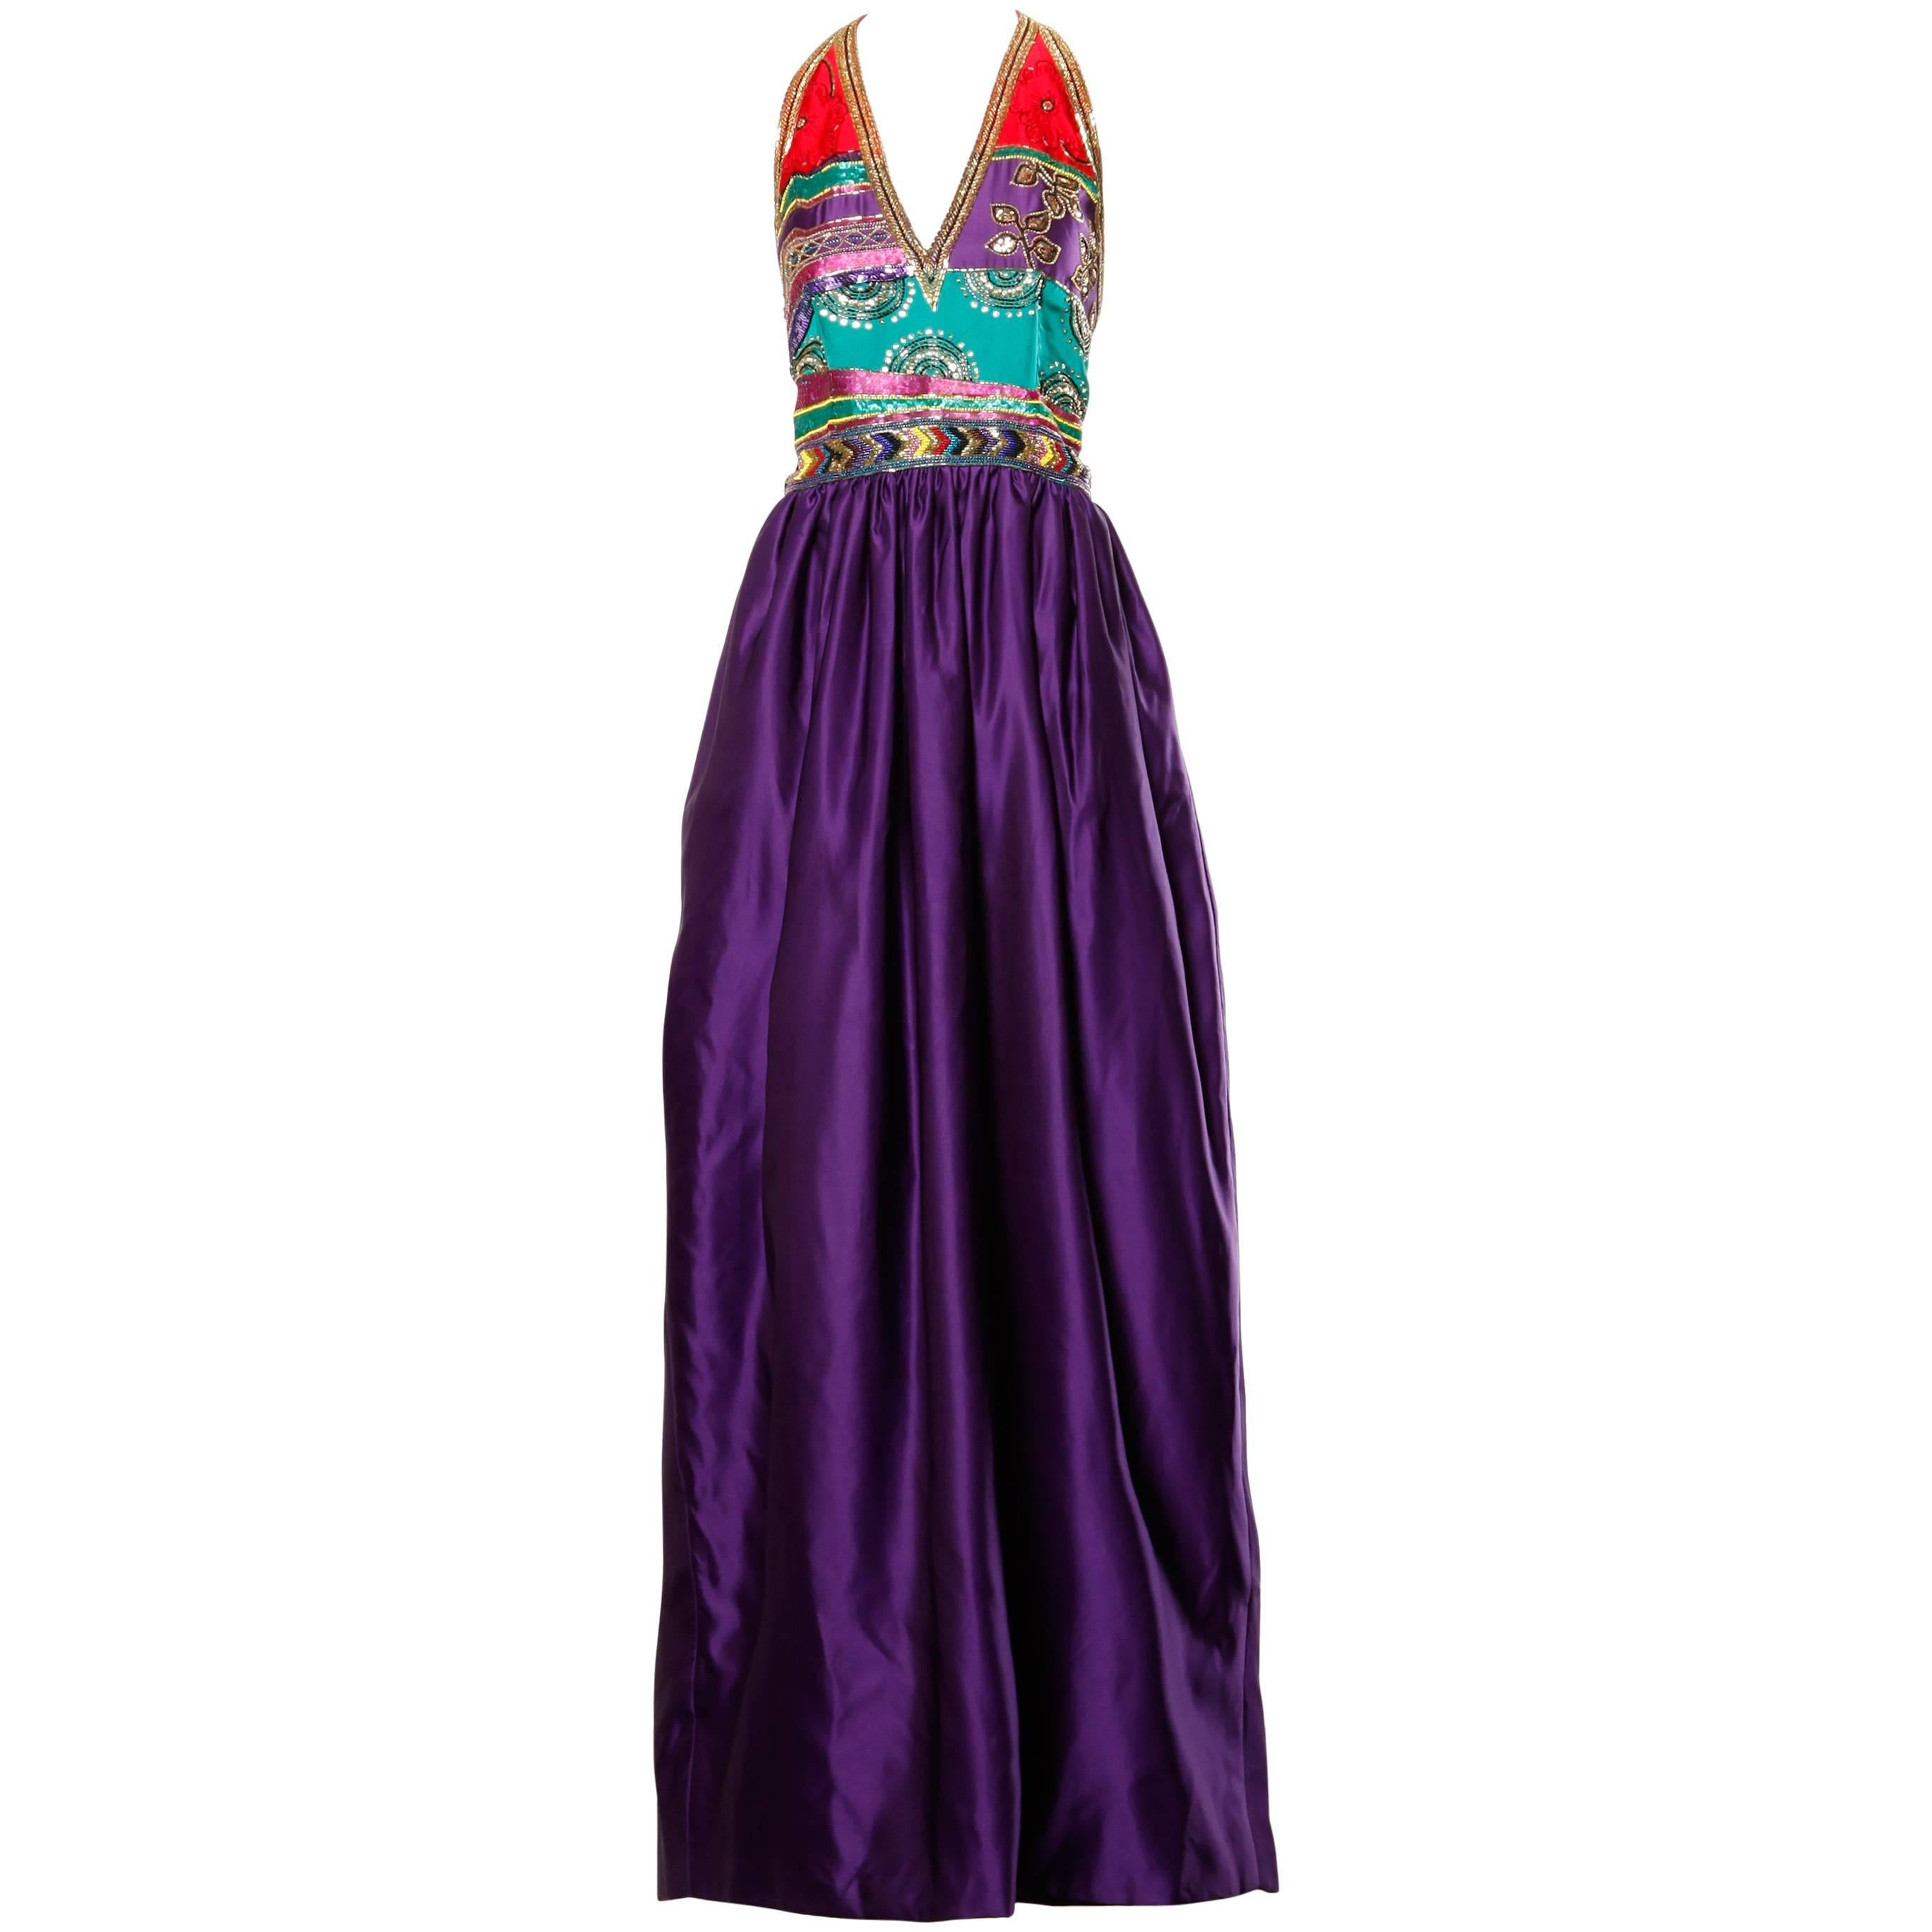 1970s Silk Satin Evening Gown with Beaded + Sequin Plunging Neckline